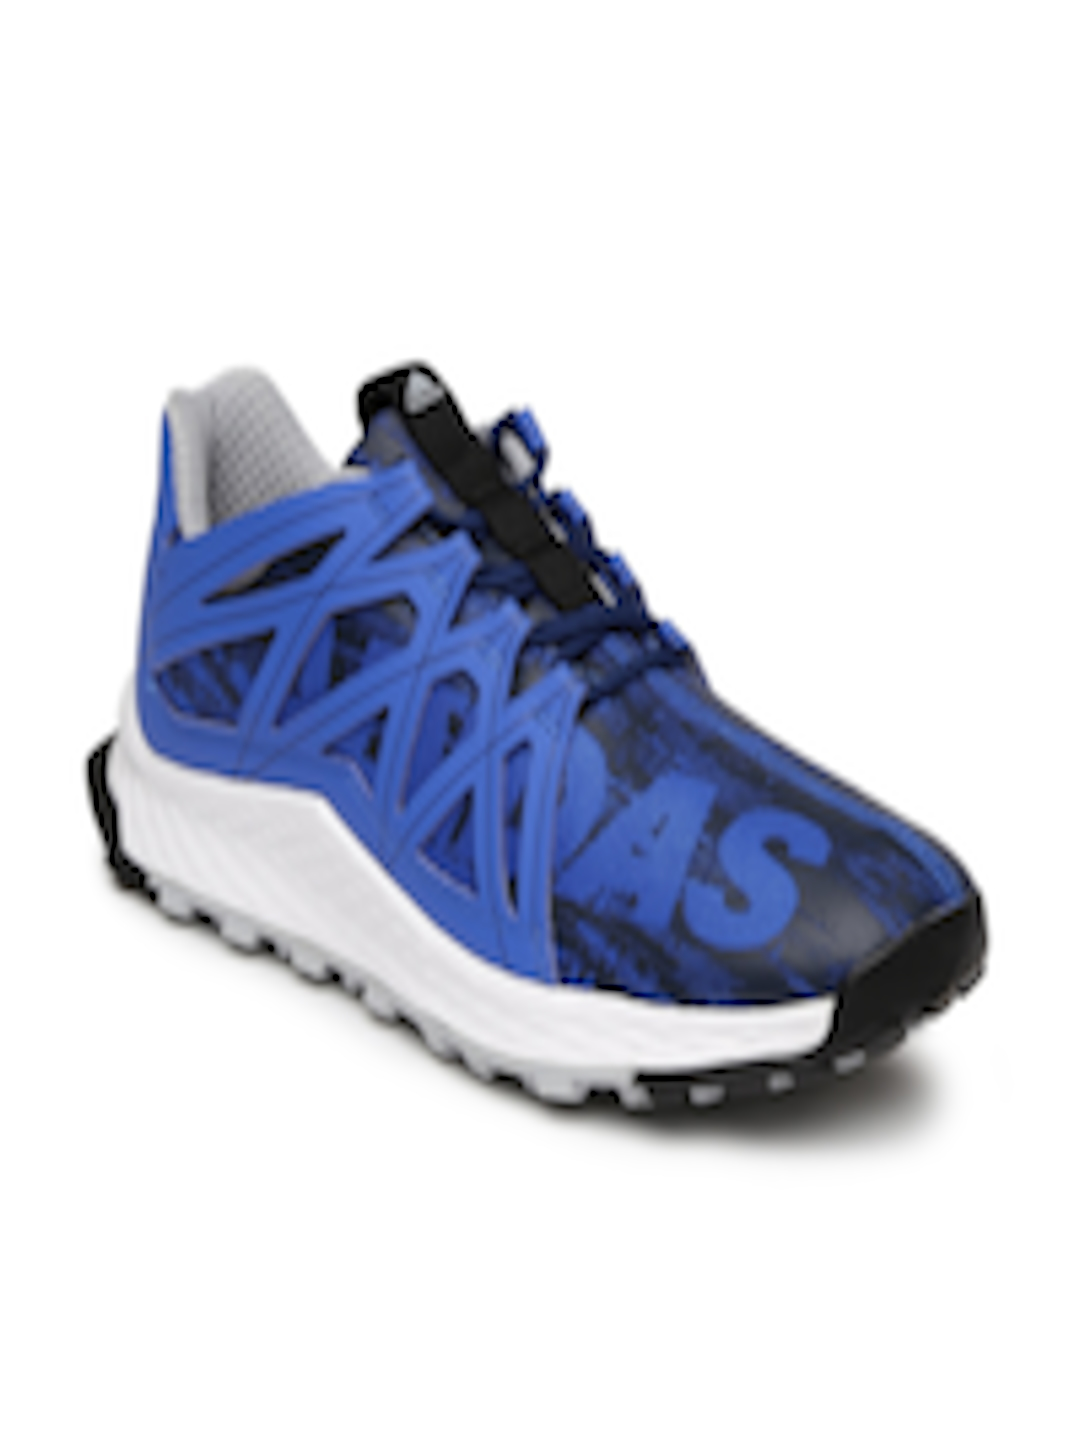 963379adc2aea Buy ADIDAS Men Blue VIGOR BOUNCE Running Shoes - Sports Shoes for ...